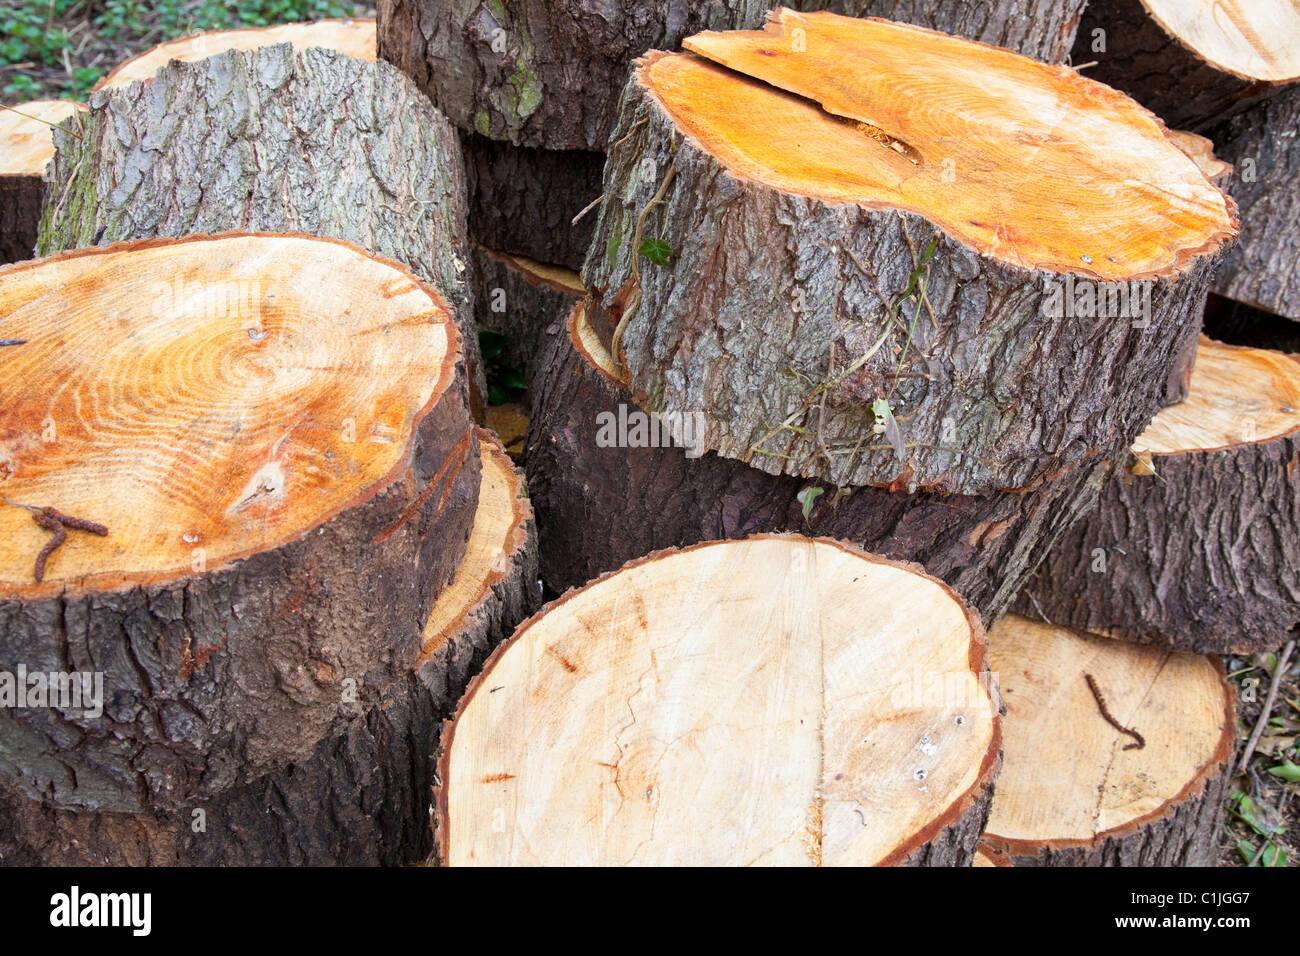 Woodland management, log pile left as part of conservation policy, Kent, UK Stock Photo